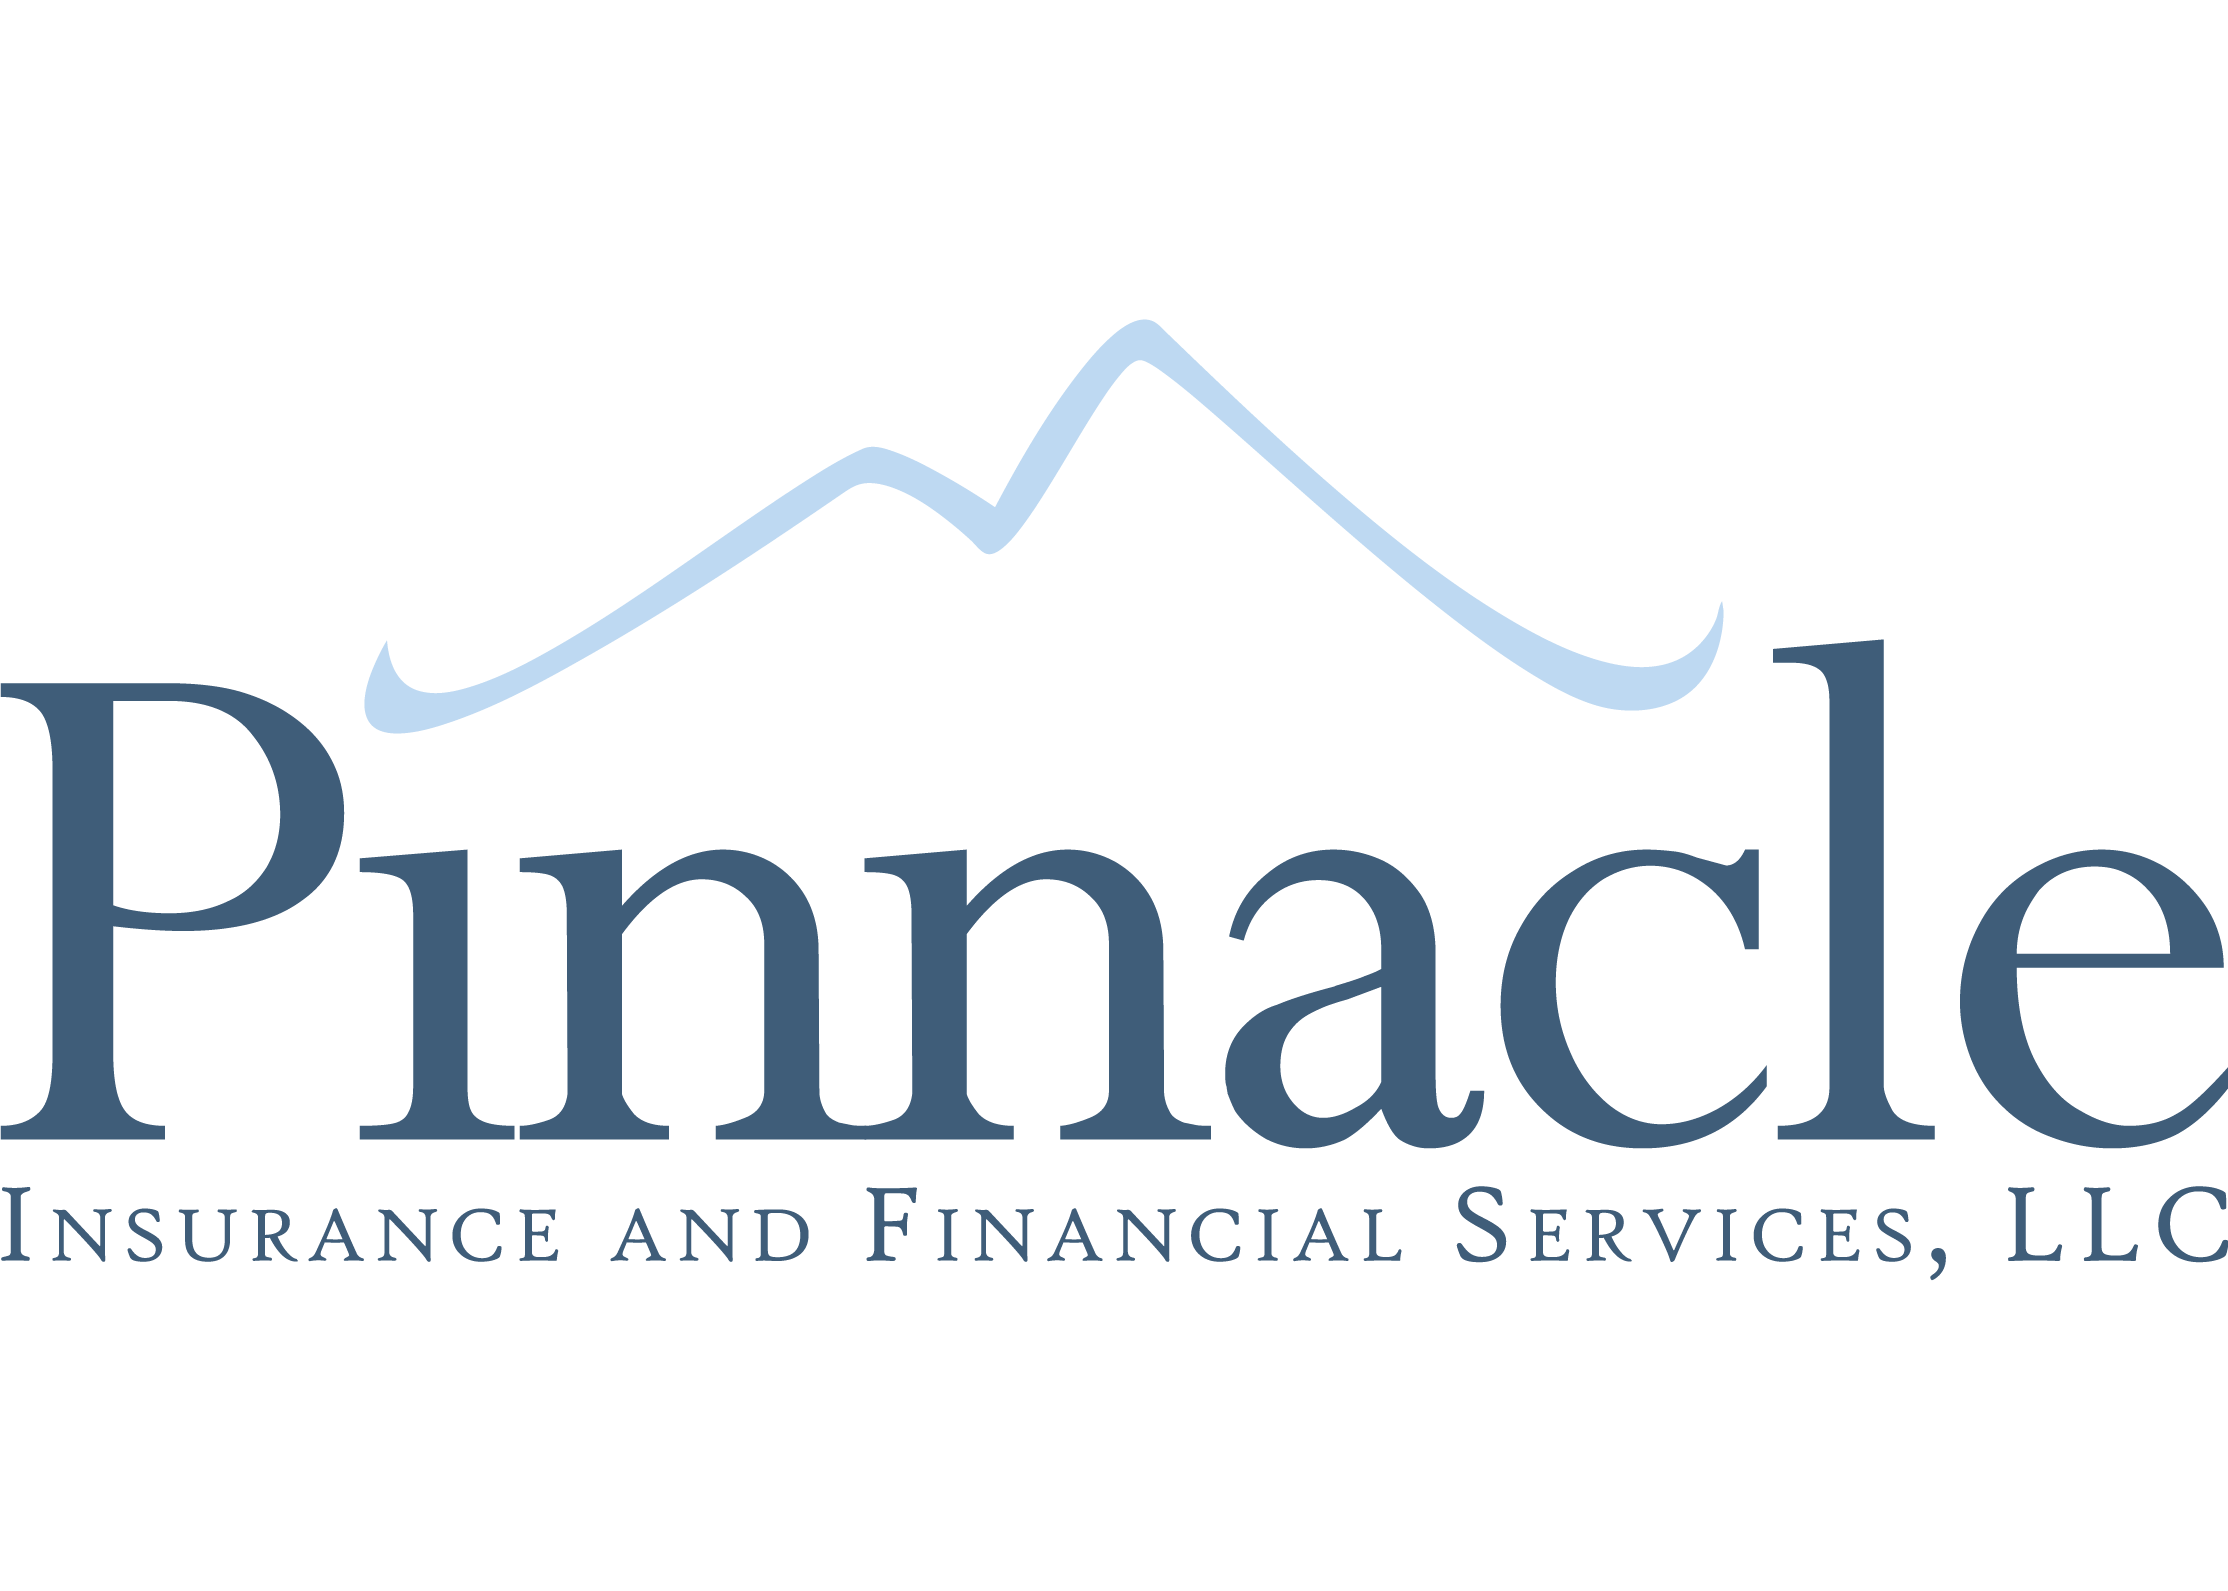 Pinnacle Insurance and Financial Services IMO logo